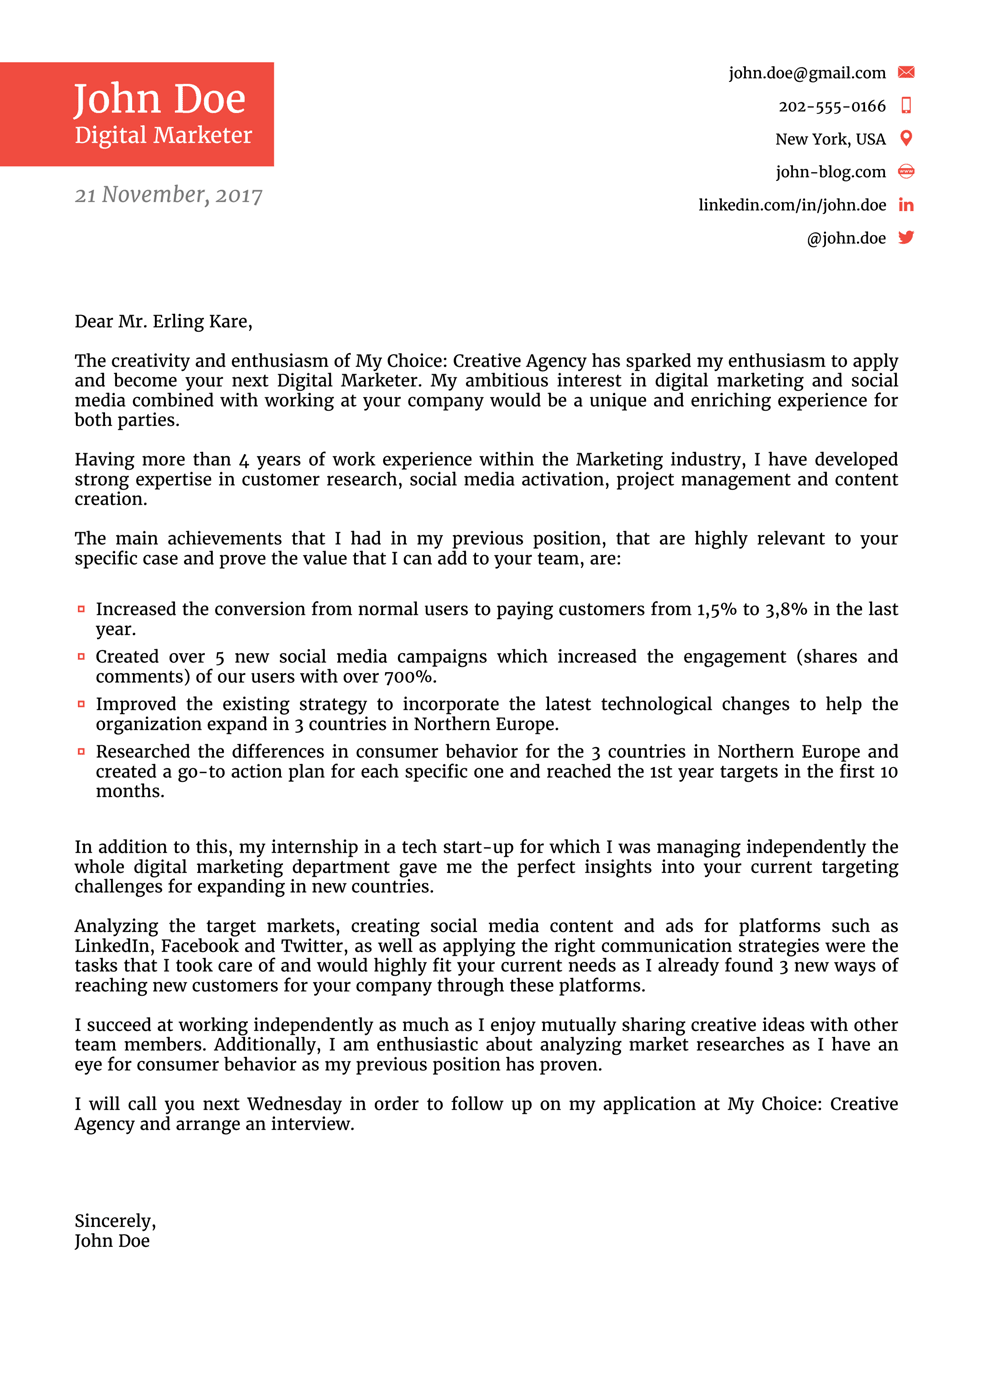 Application Letter For Job Clerk, Functional Cover Letter Template, Application Letter For Job Clerk